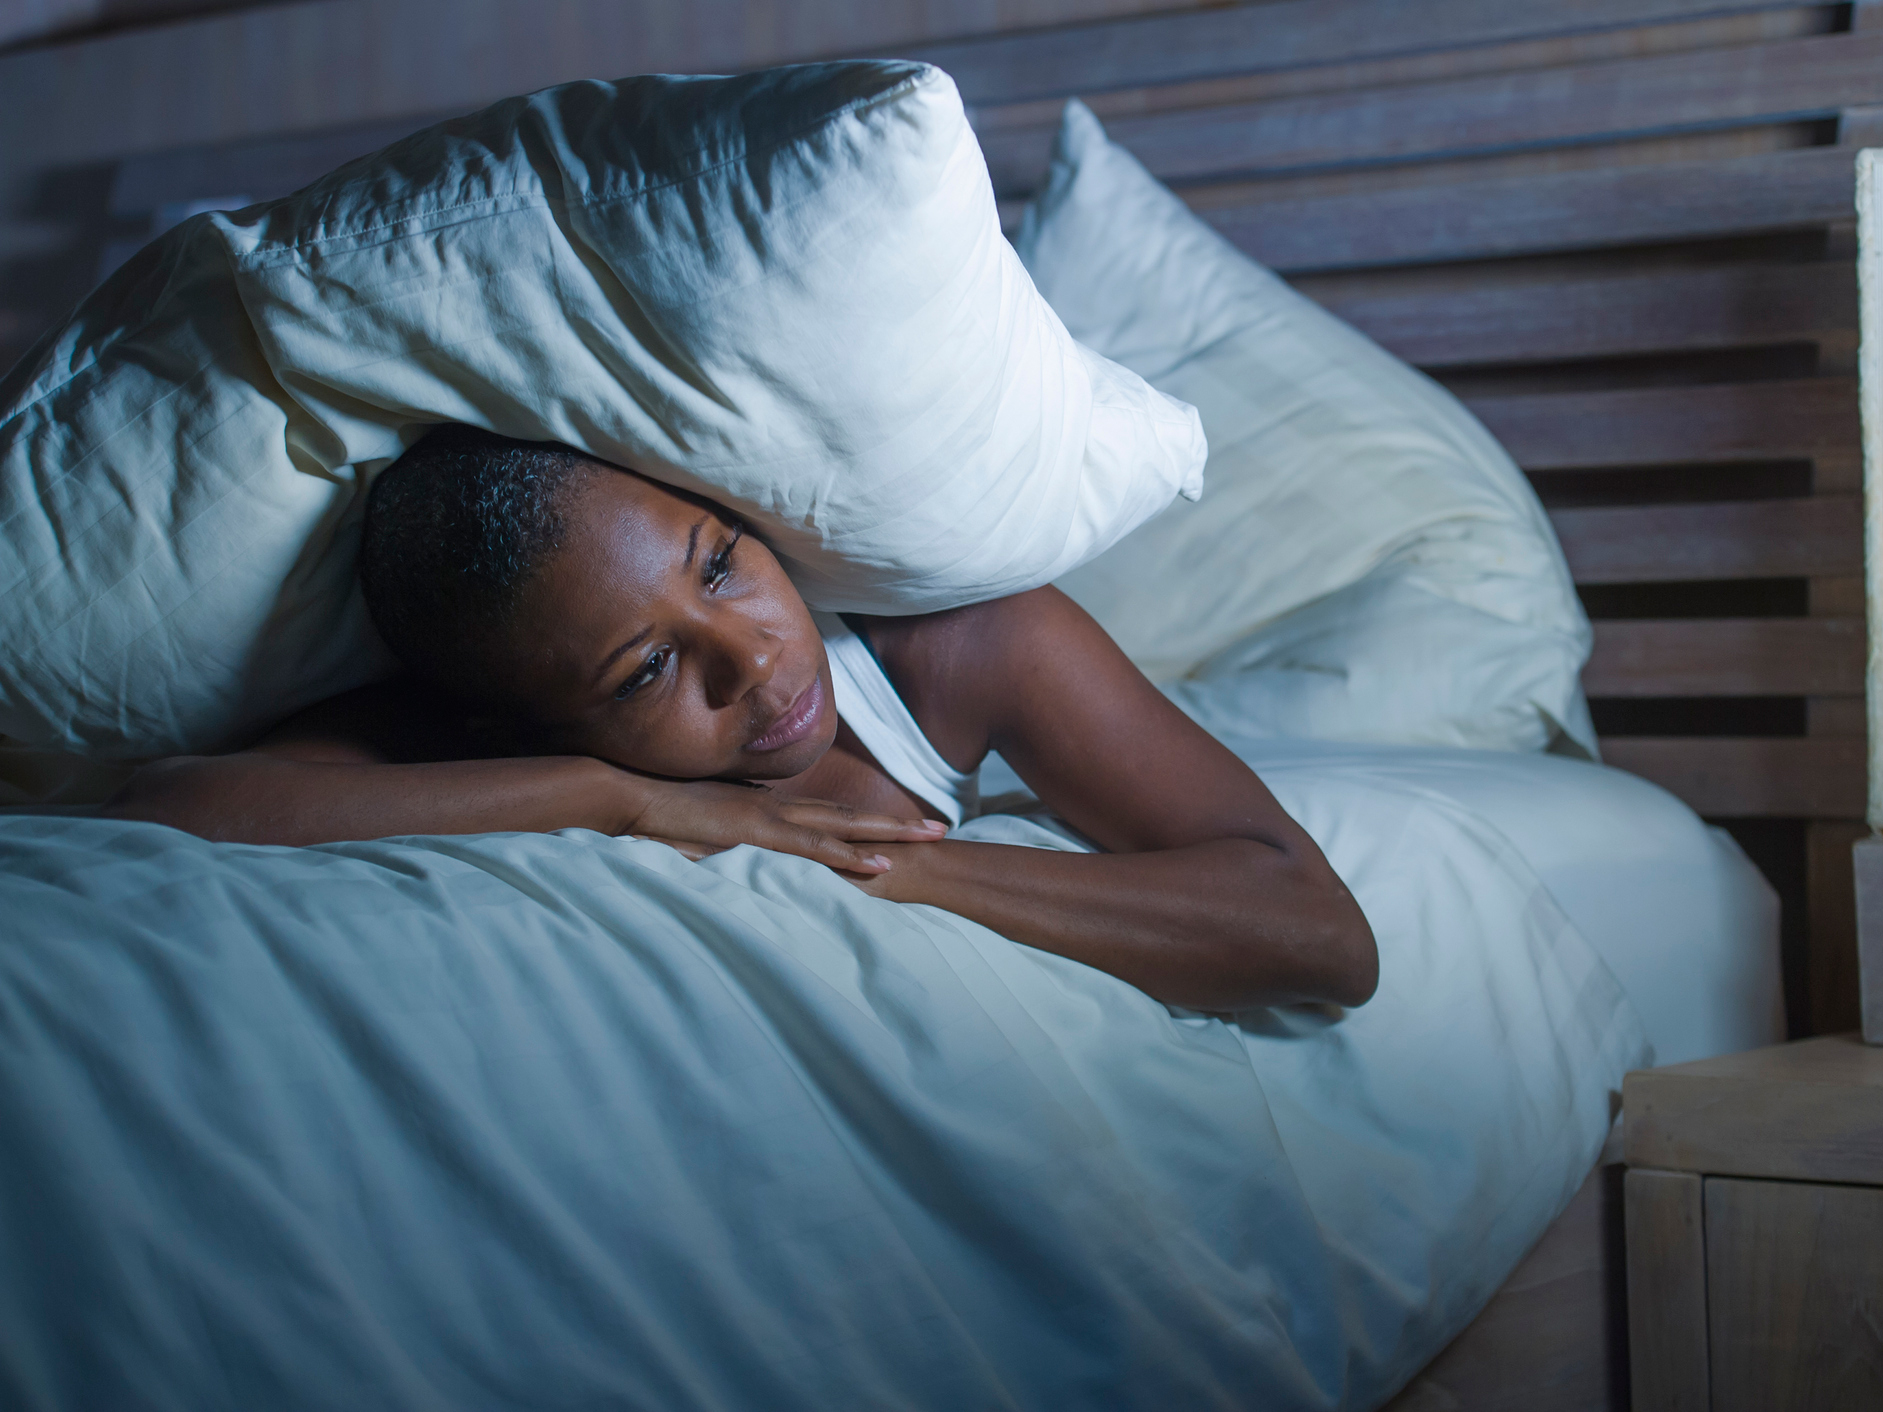 Just one night of bad sleep can blow up your blood pressure